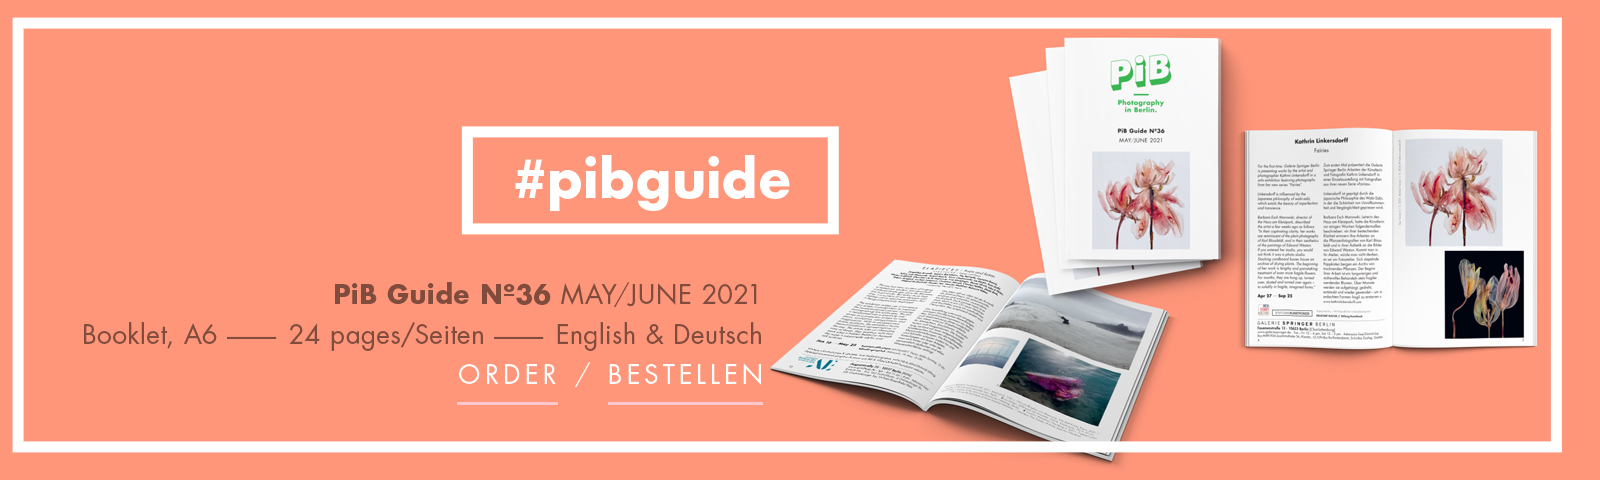 PiB Guide Nº36 MAY/JUNE 2021 © PiB Photography In Berlin. Cover Photo: Fairies II / 5, 2021 © Kathrin Linkersdorff. Solo Exhibition »FAIRIES« At Galerie Springer Berlin In Charlottenburg. Photos On Right Double Page (PiB Guide Nº36 Pp. 4 & 5): Top: Fairies II / 5, 2021; Bottom: Fairies I / 4, 2020 © Kathrin Linkersdorff, Courtesy Kathrin Linkersdorff & Galerie Springer Berlin. +++ PiB Guide Editor / V.i.S.d.P. / Art Direction: Julia Schiller @julia.schiller_ · Ele Studio Berlin · Www.ele-studio.de +++ Printed On 100% Recycling Paper In Berlin-Köpenick By Altmann-druck